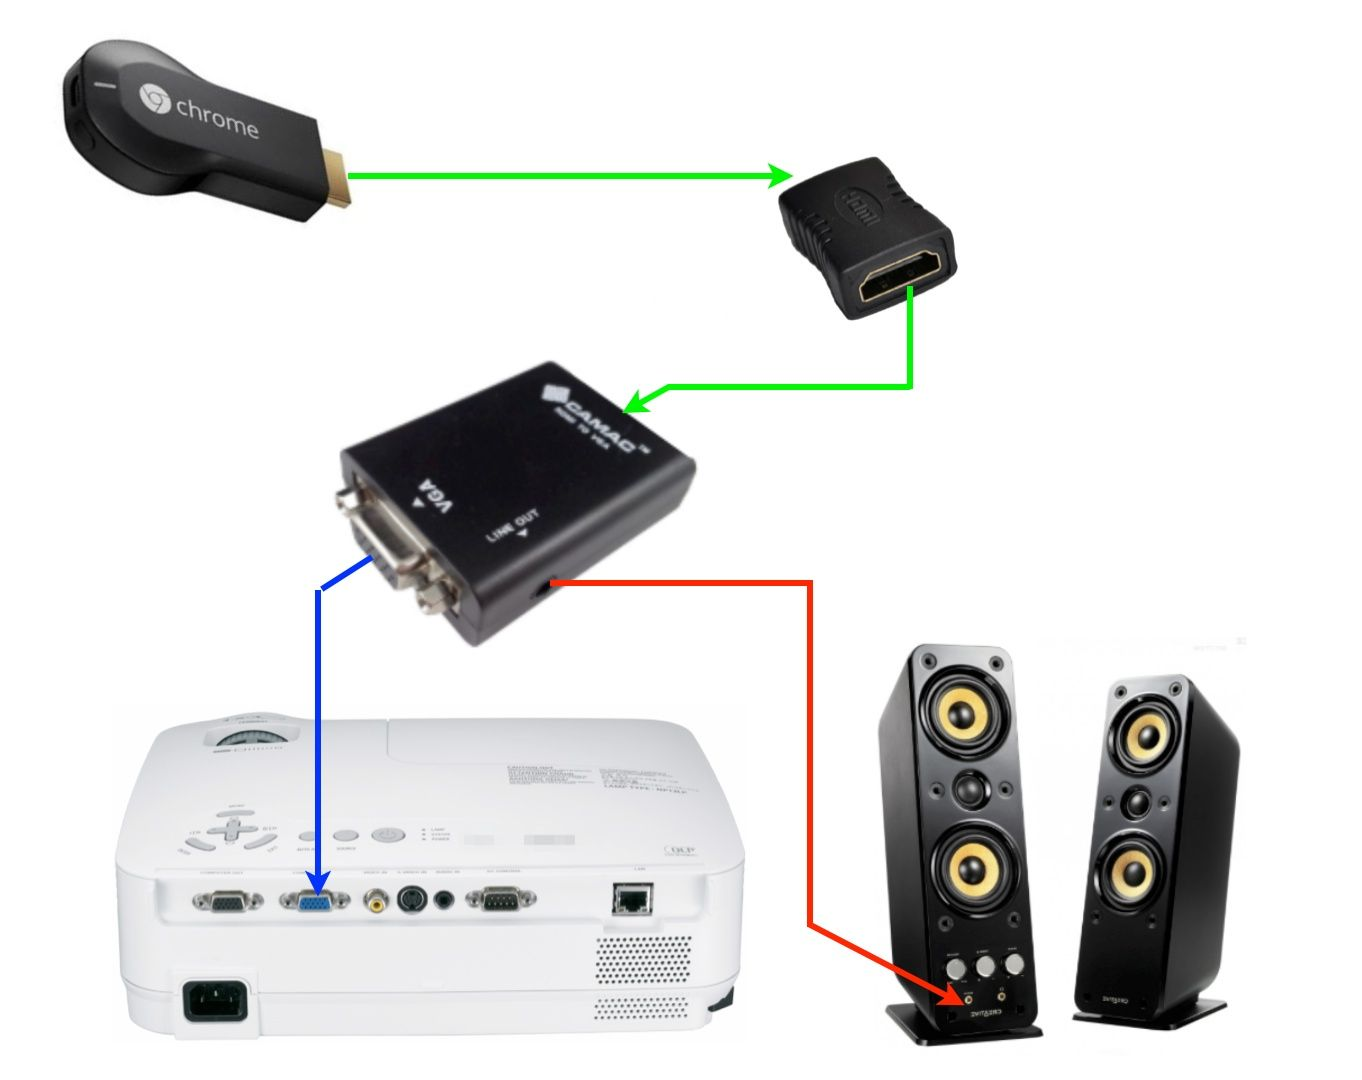 hight resolution of connecting a chromecast to vga projector diagram connecting apple tv